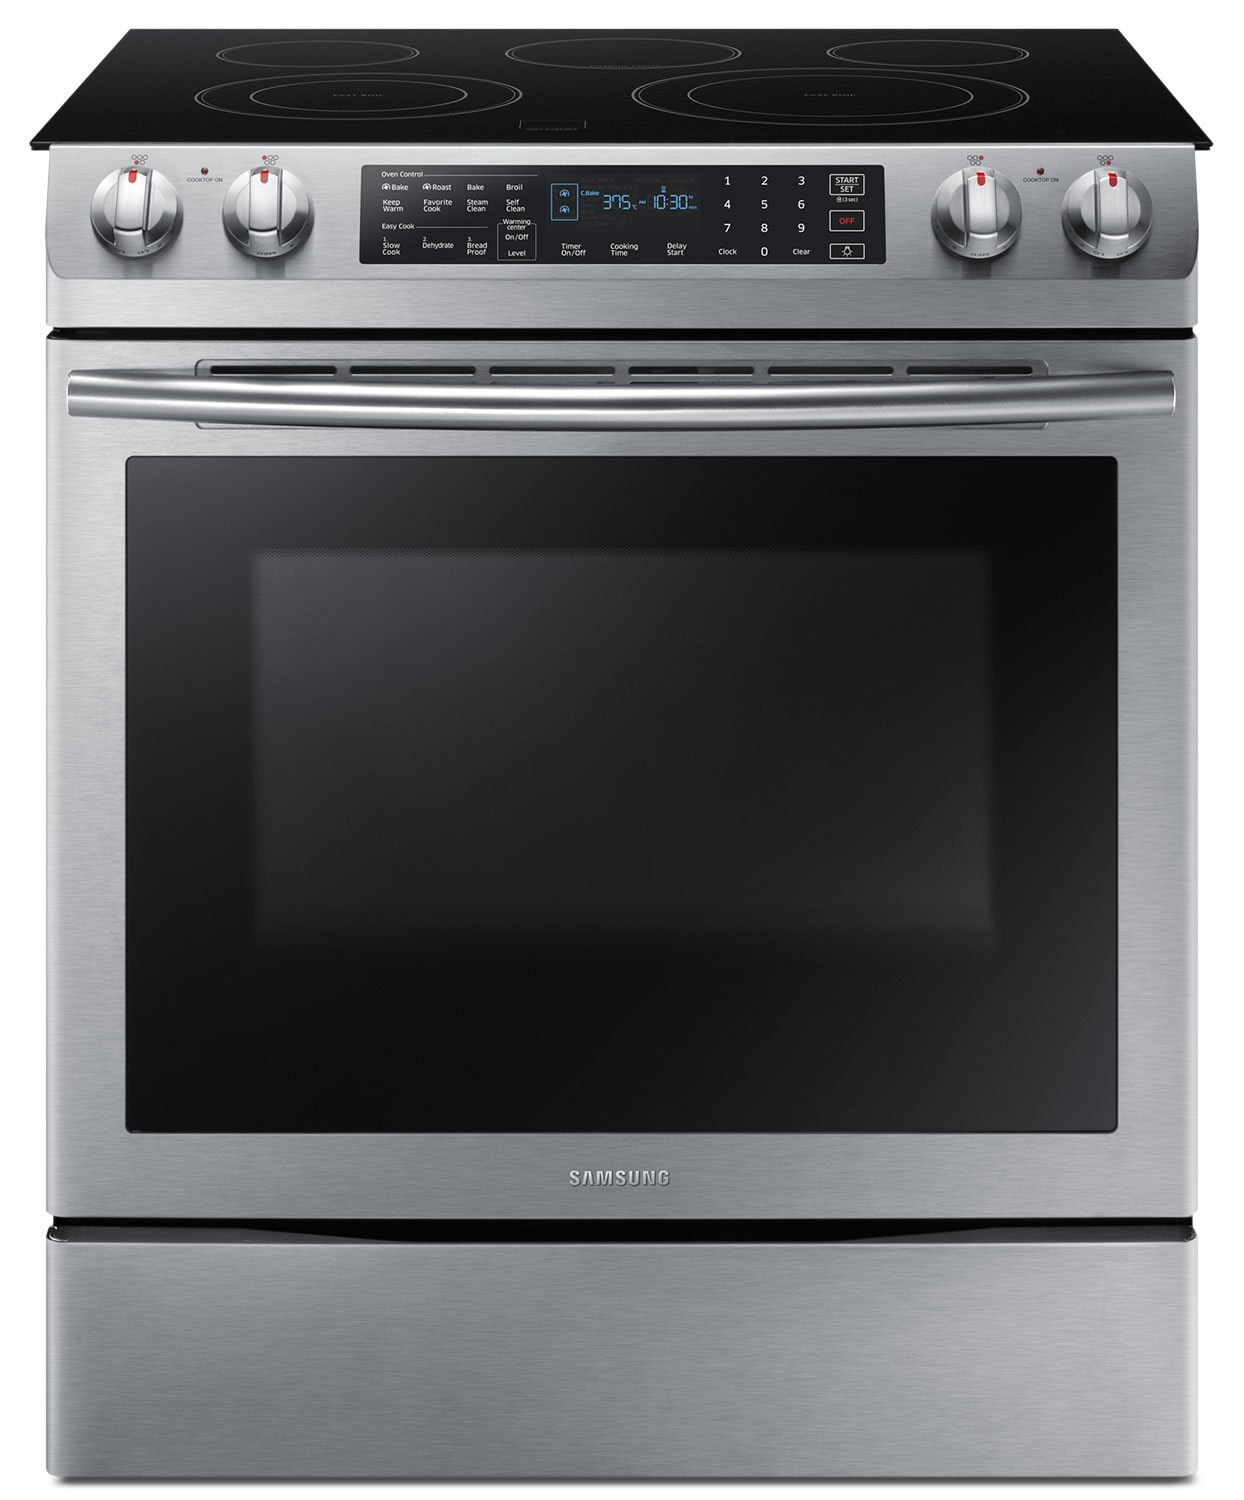 Samsung 5.8 Cu. Ft. Electric Slide-In Dual Convection Range – NE58M9430SS/AC